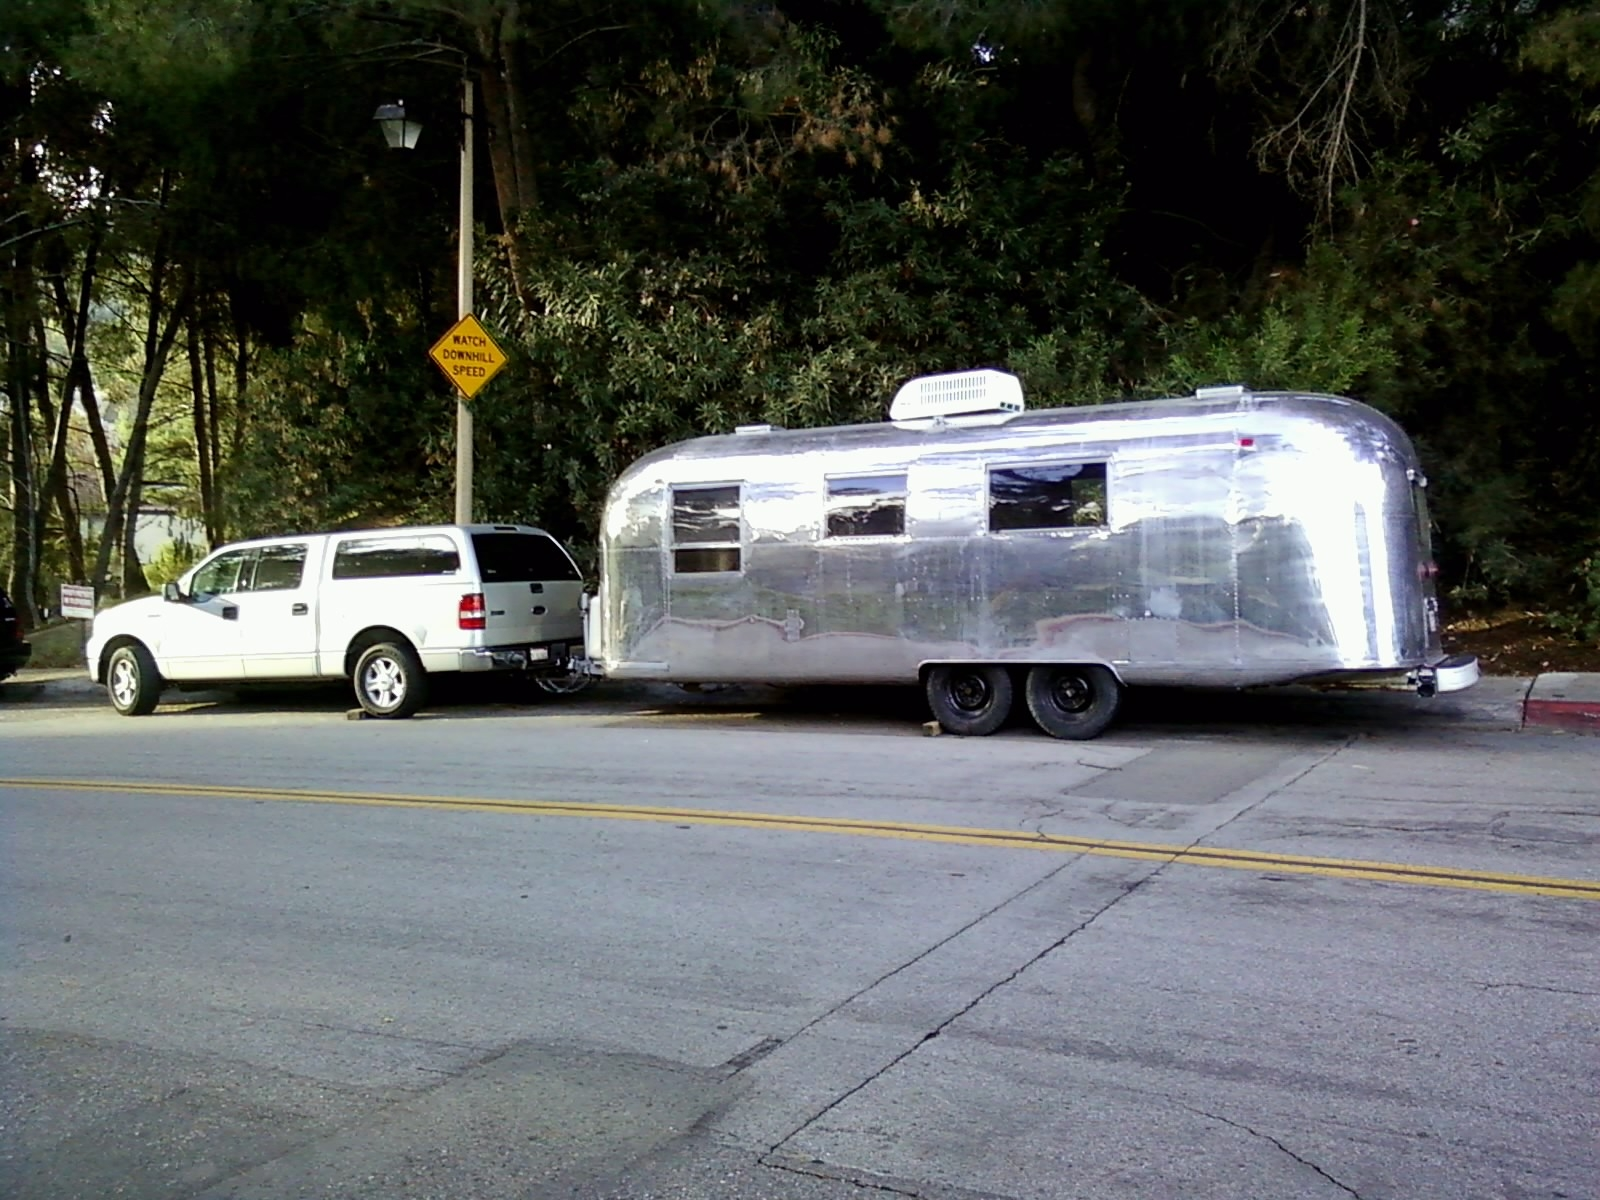 Click image for larger version  Name:trailer and truck.JPG Views:73 Size:886.3 KB ID:117334